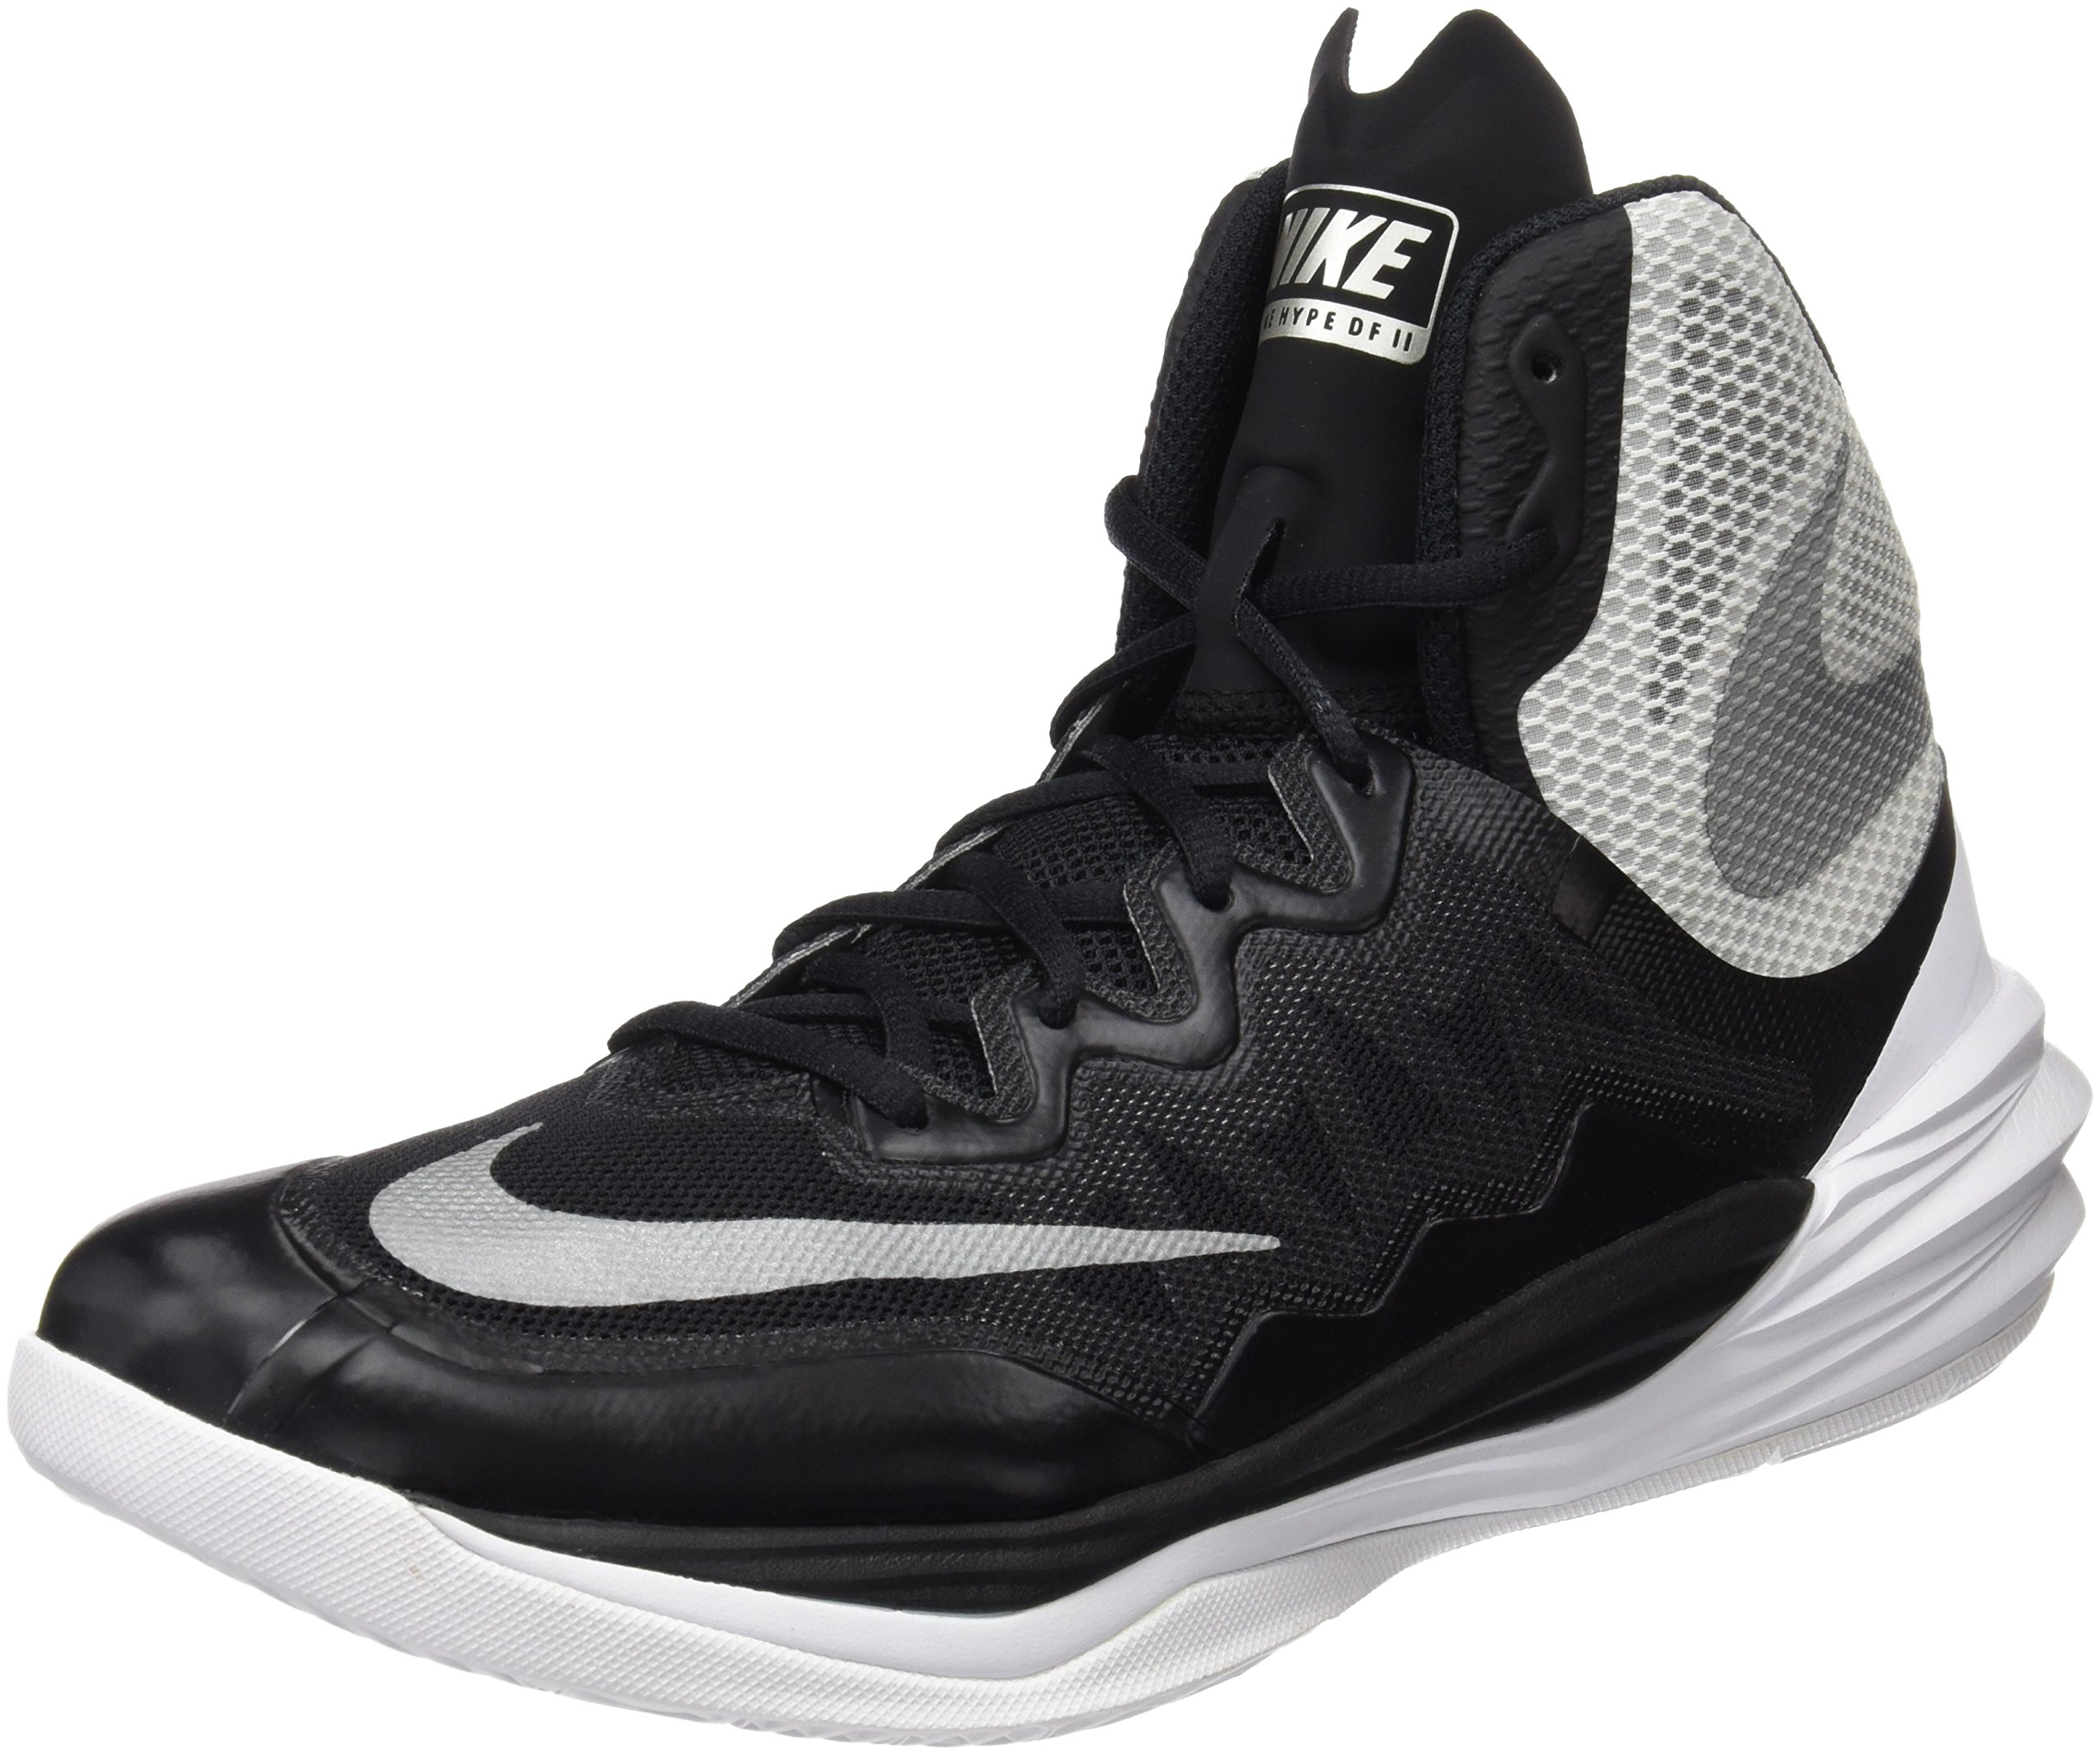 innovative design e5c32 b4044 Galleon - Nike Mens Prime Hype DF 2016 Basketball Shoes Black Silver White  806941-001 Size 10.5